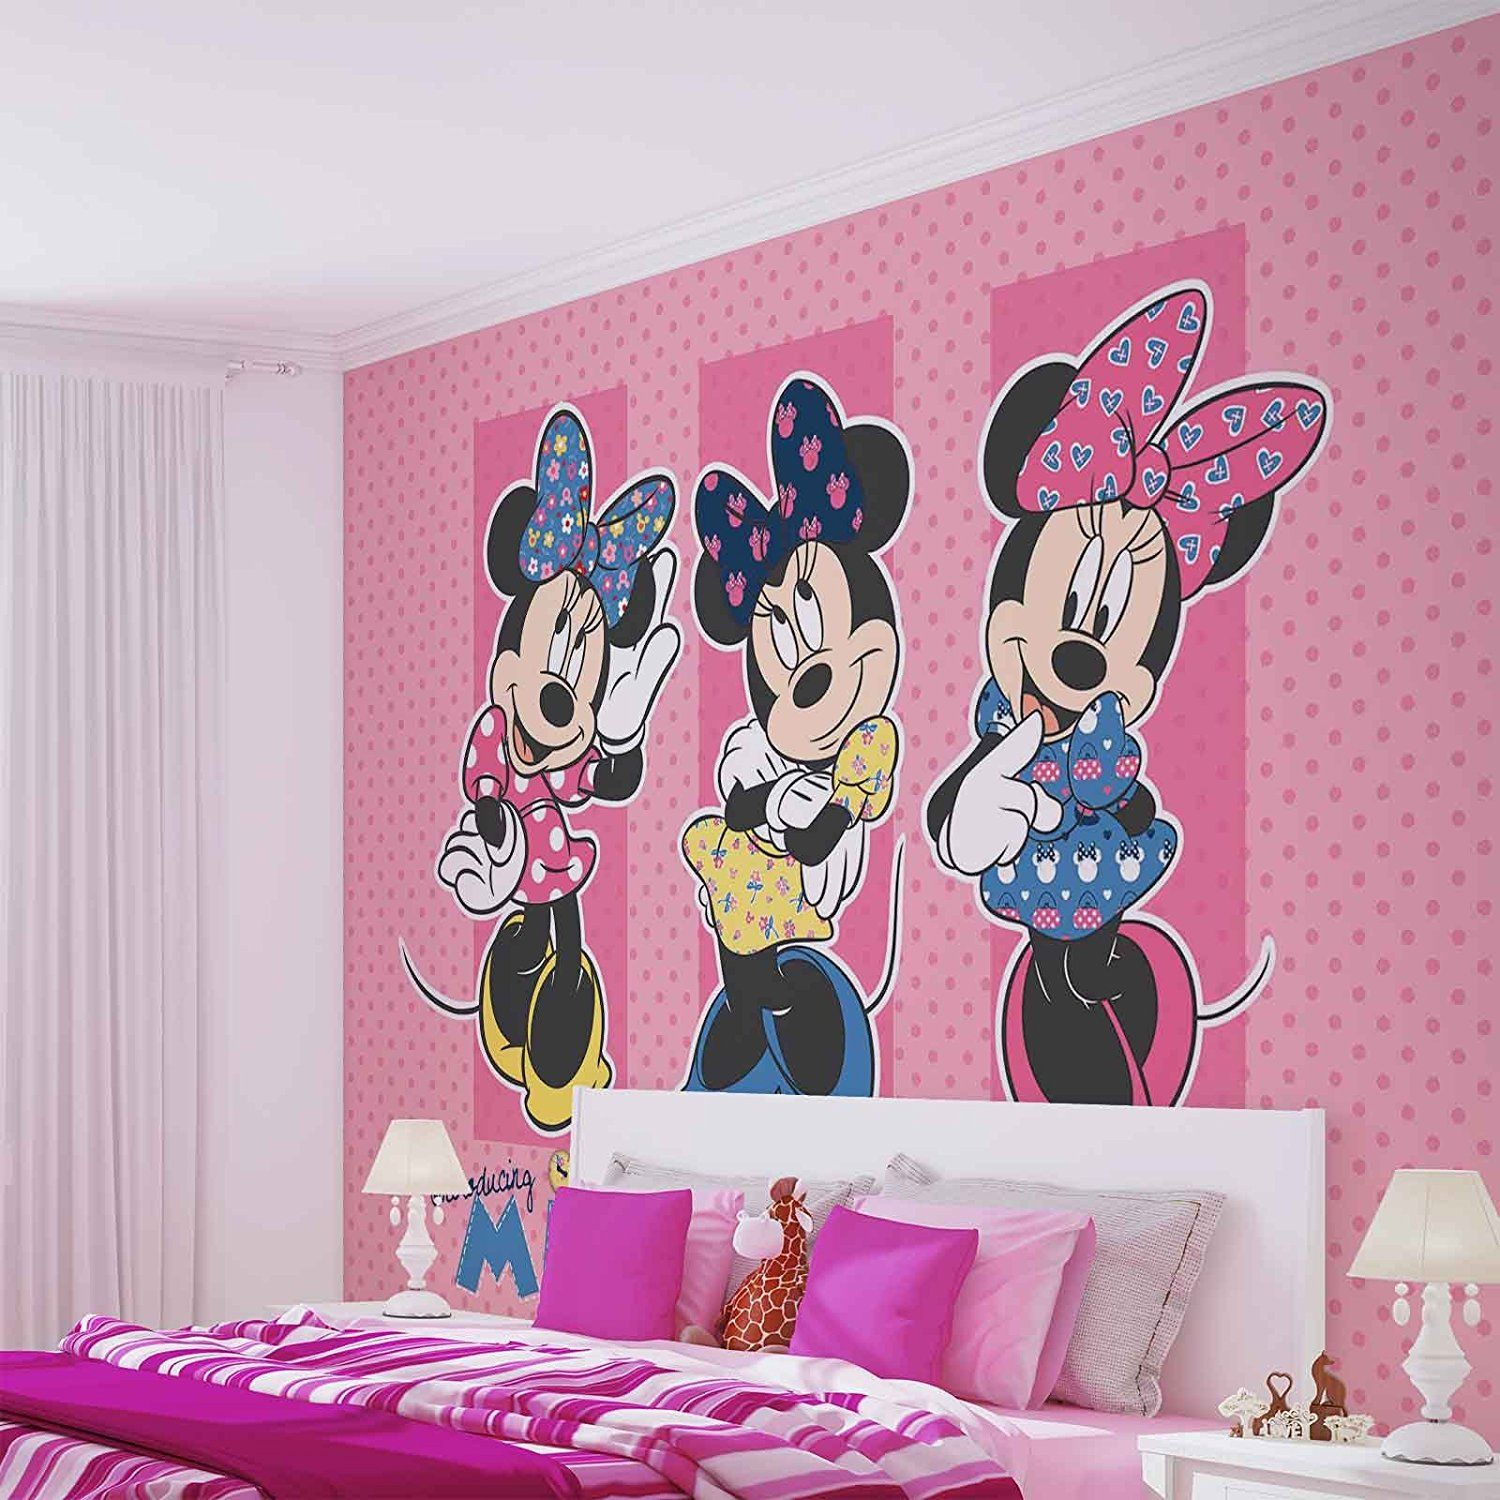 Fototapete Kinderzimmer Minnie Mouse Minnie Mouse Forwall Fototapete Tapete Fotomural